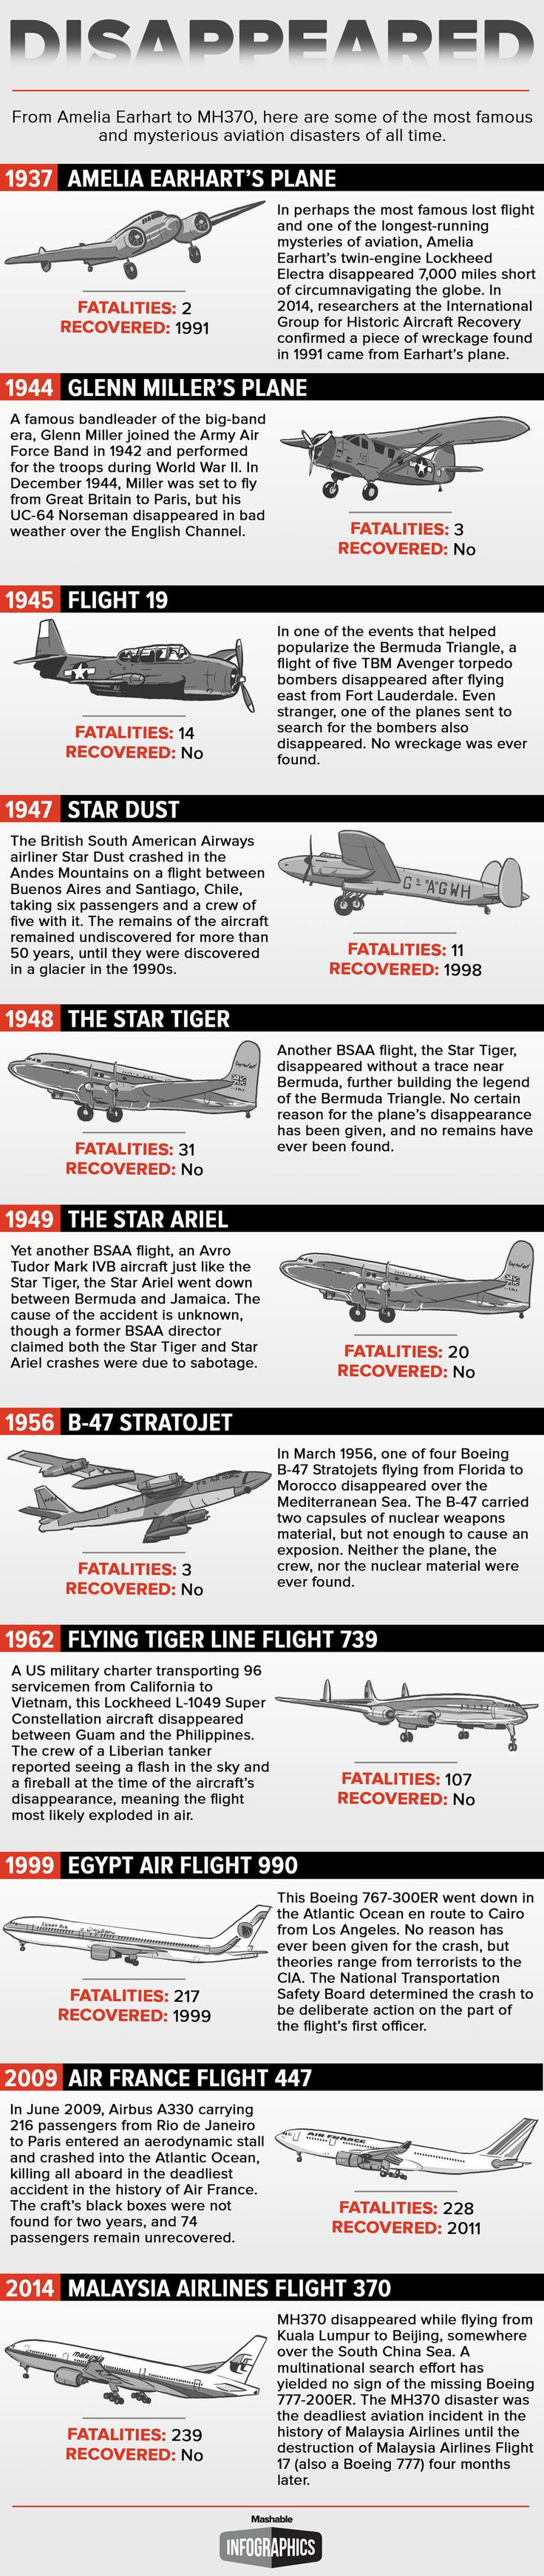 The history of aviation is littered with mysterious disappearances like that of MH370.